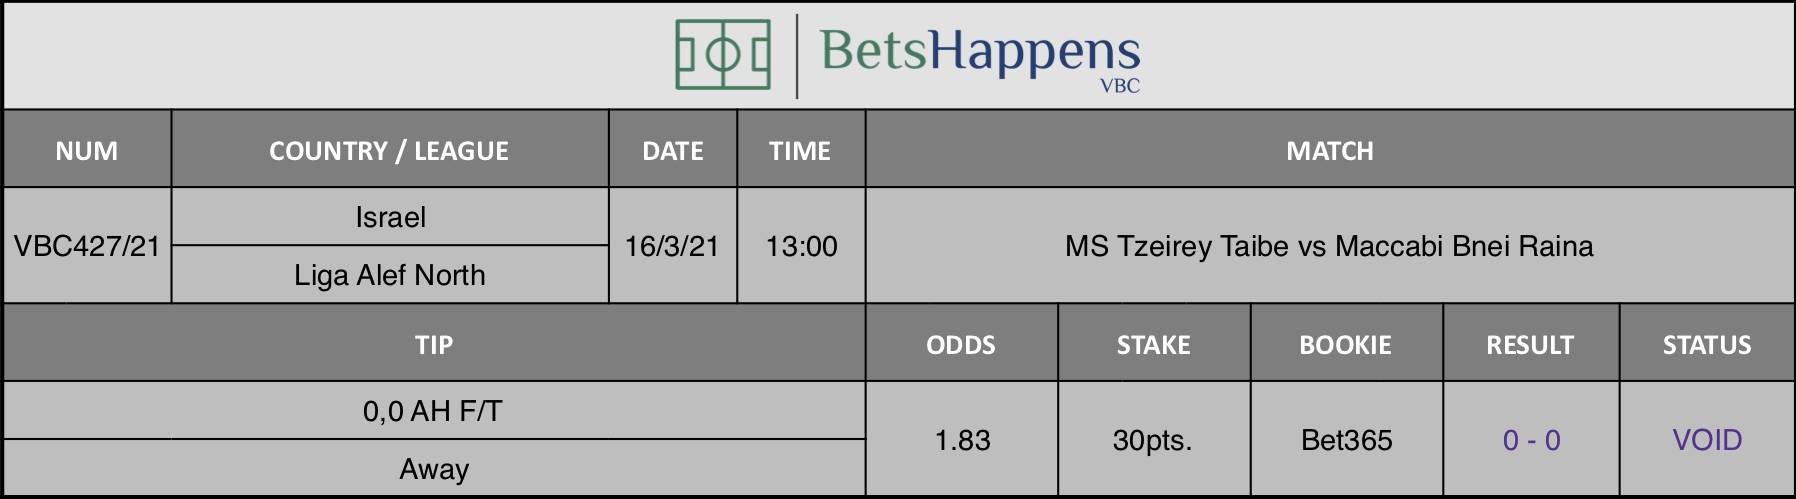 Results of our tip for the MS Tzeirey Taibe vs Maccabi Bnei Raina match where 0,0 AH F/T  Away is recommended.